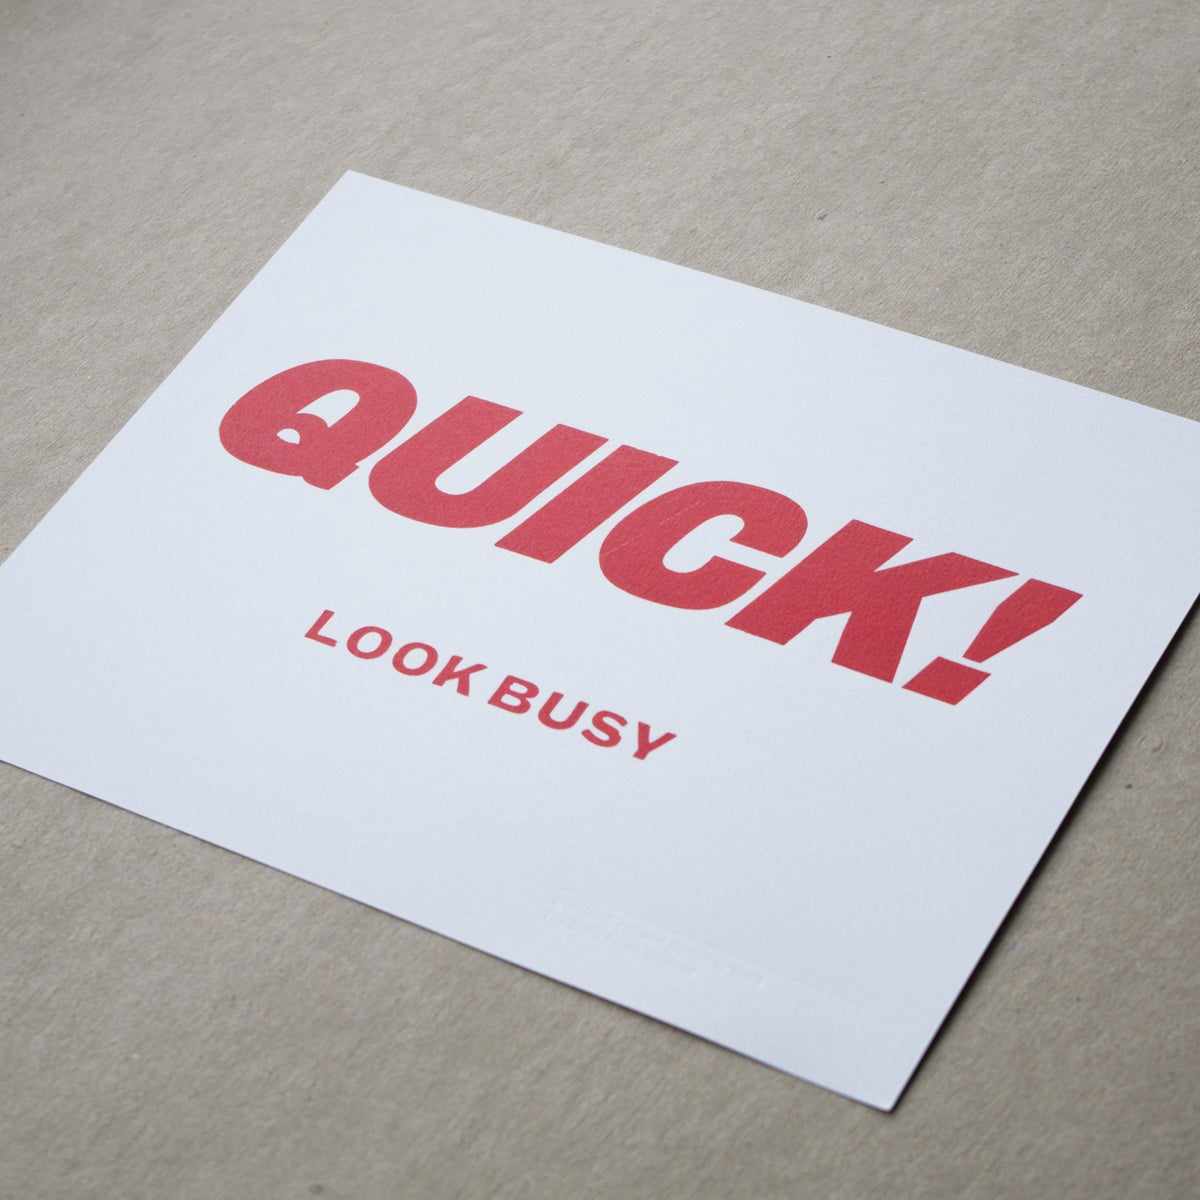 Image of 'Quick! Look Busy' letterpress print (10 x 8 inches)